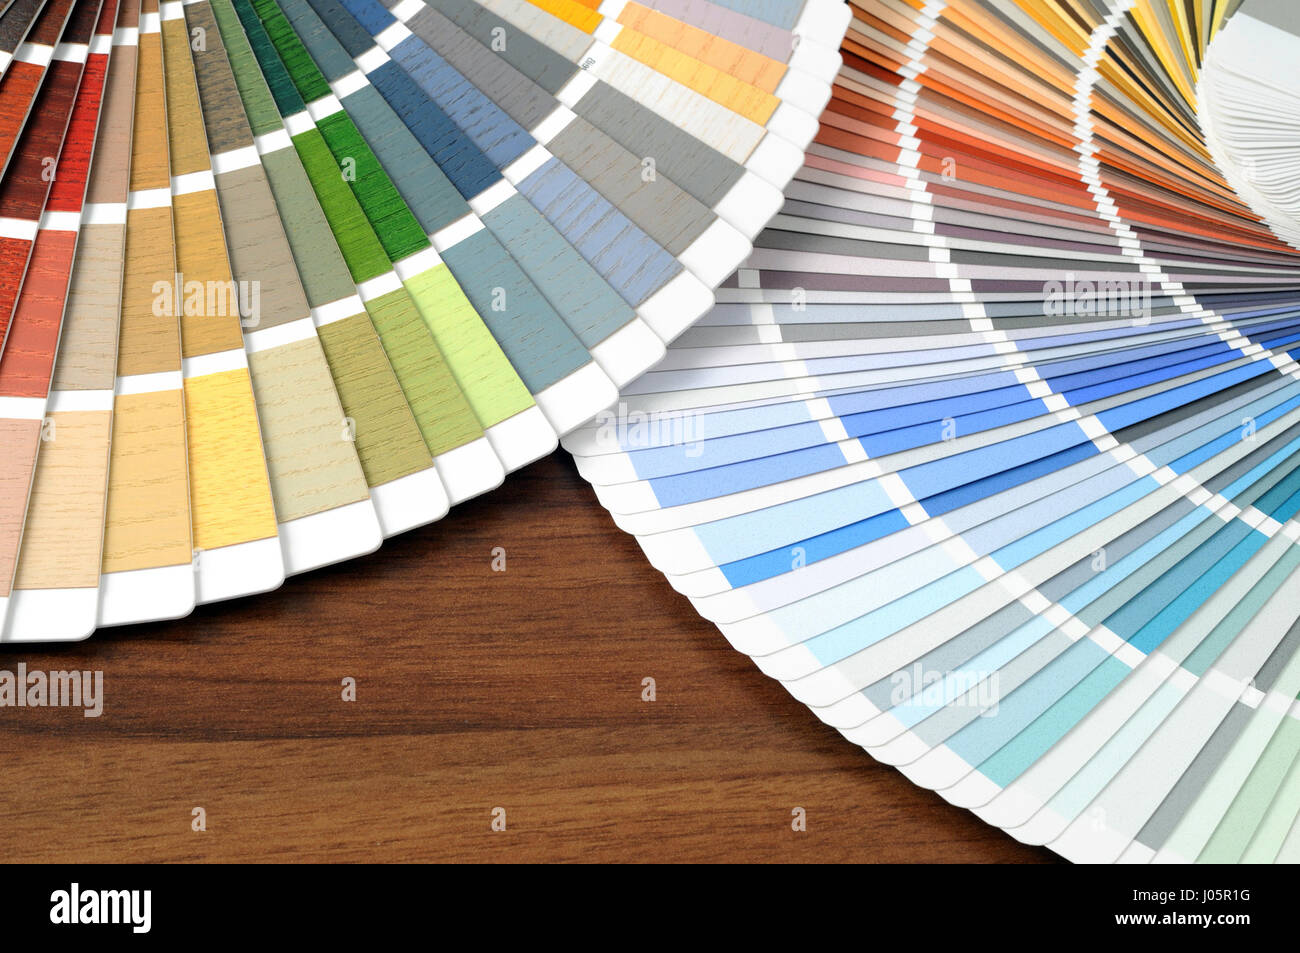 Color swatches on a table. - Stock Image